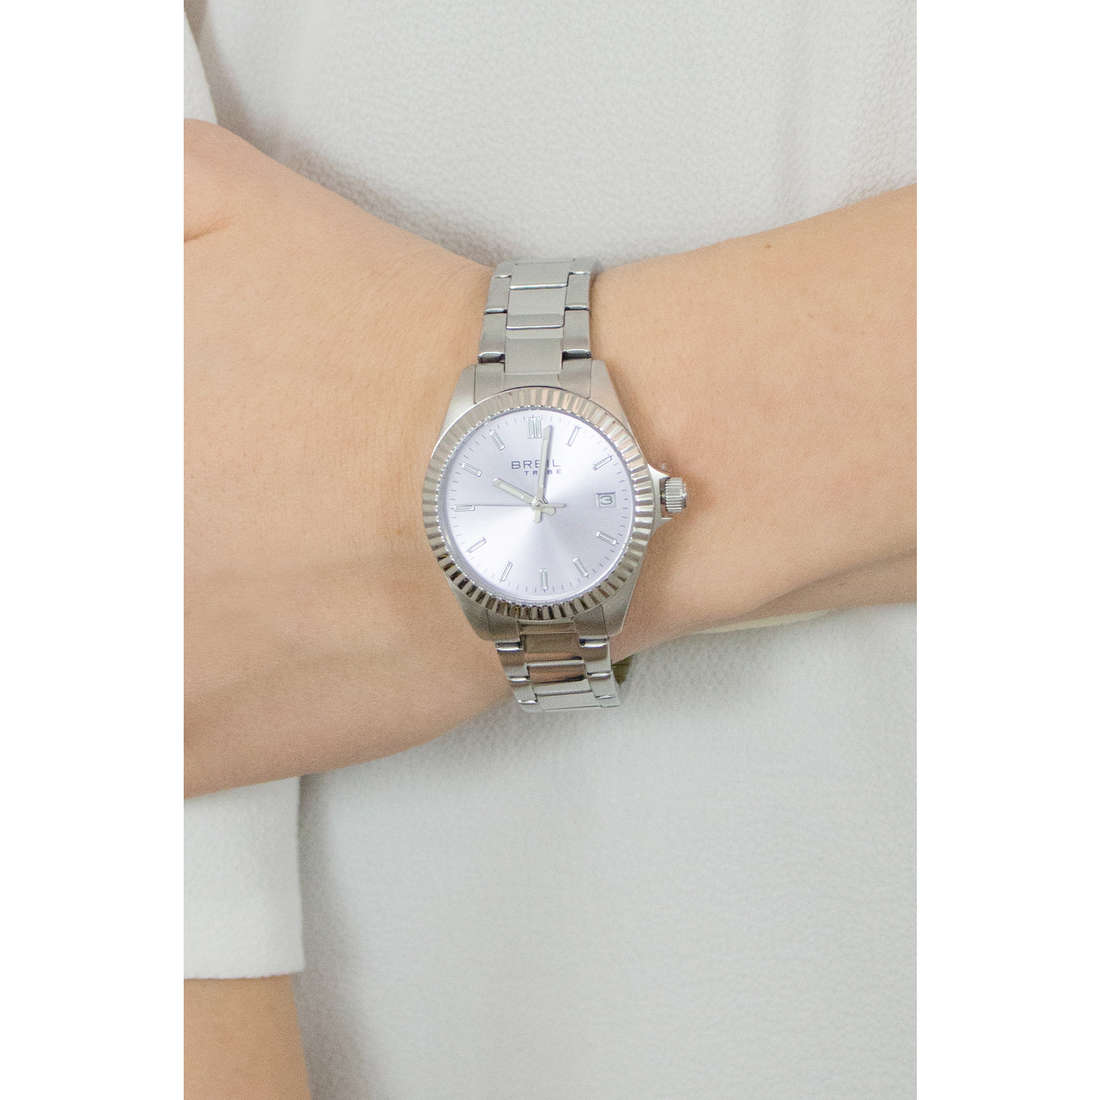 Breil seul le temps Classic Elegance Extension femme EW0239 photo wearing